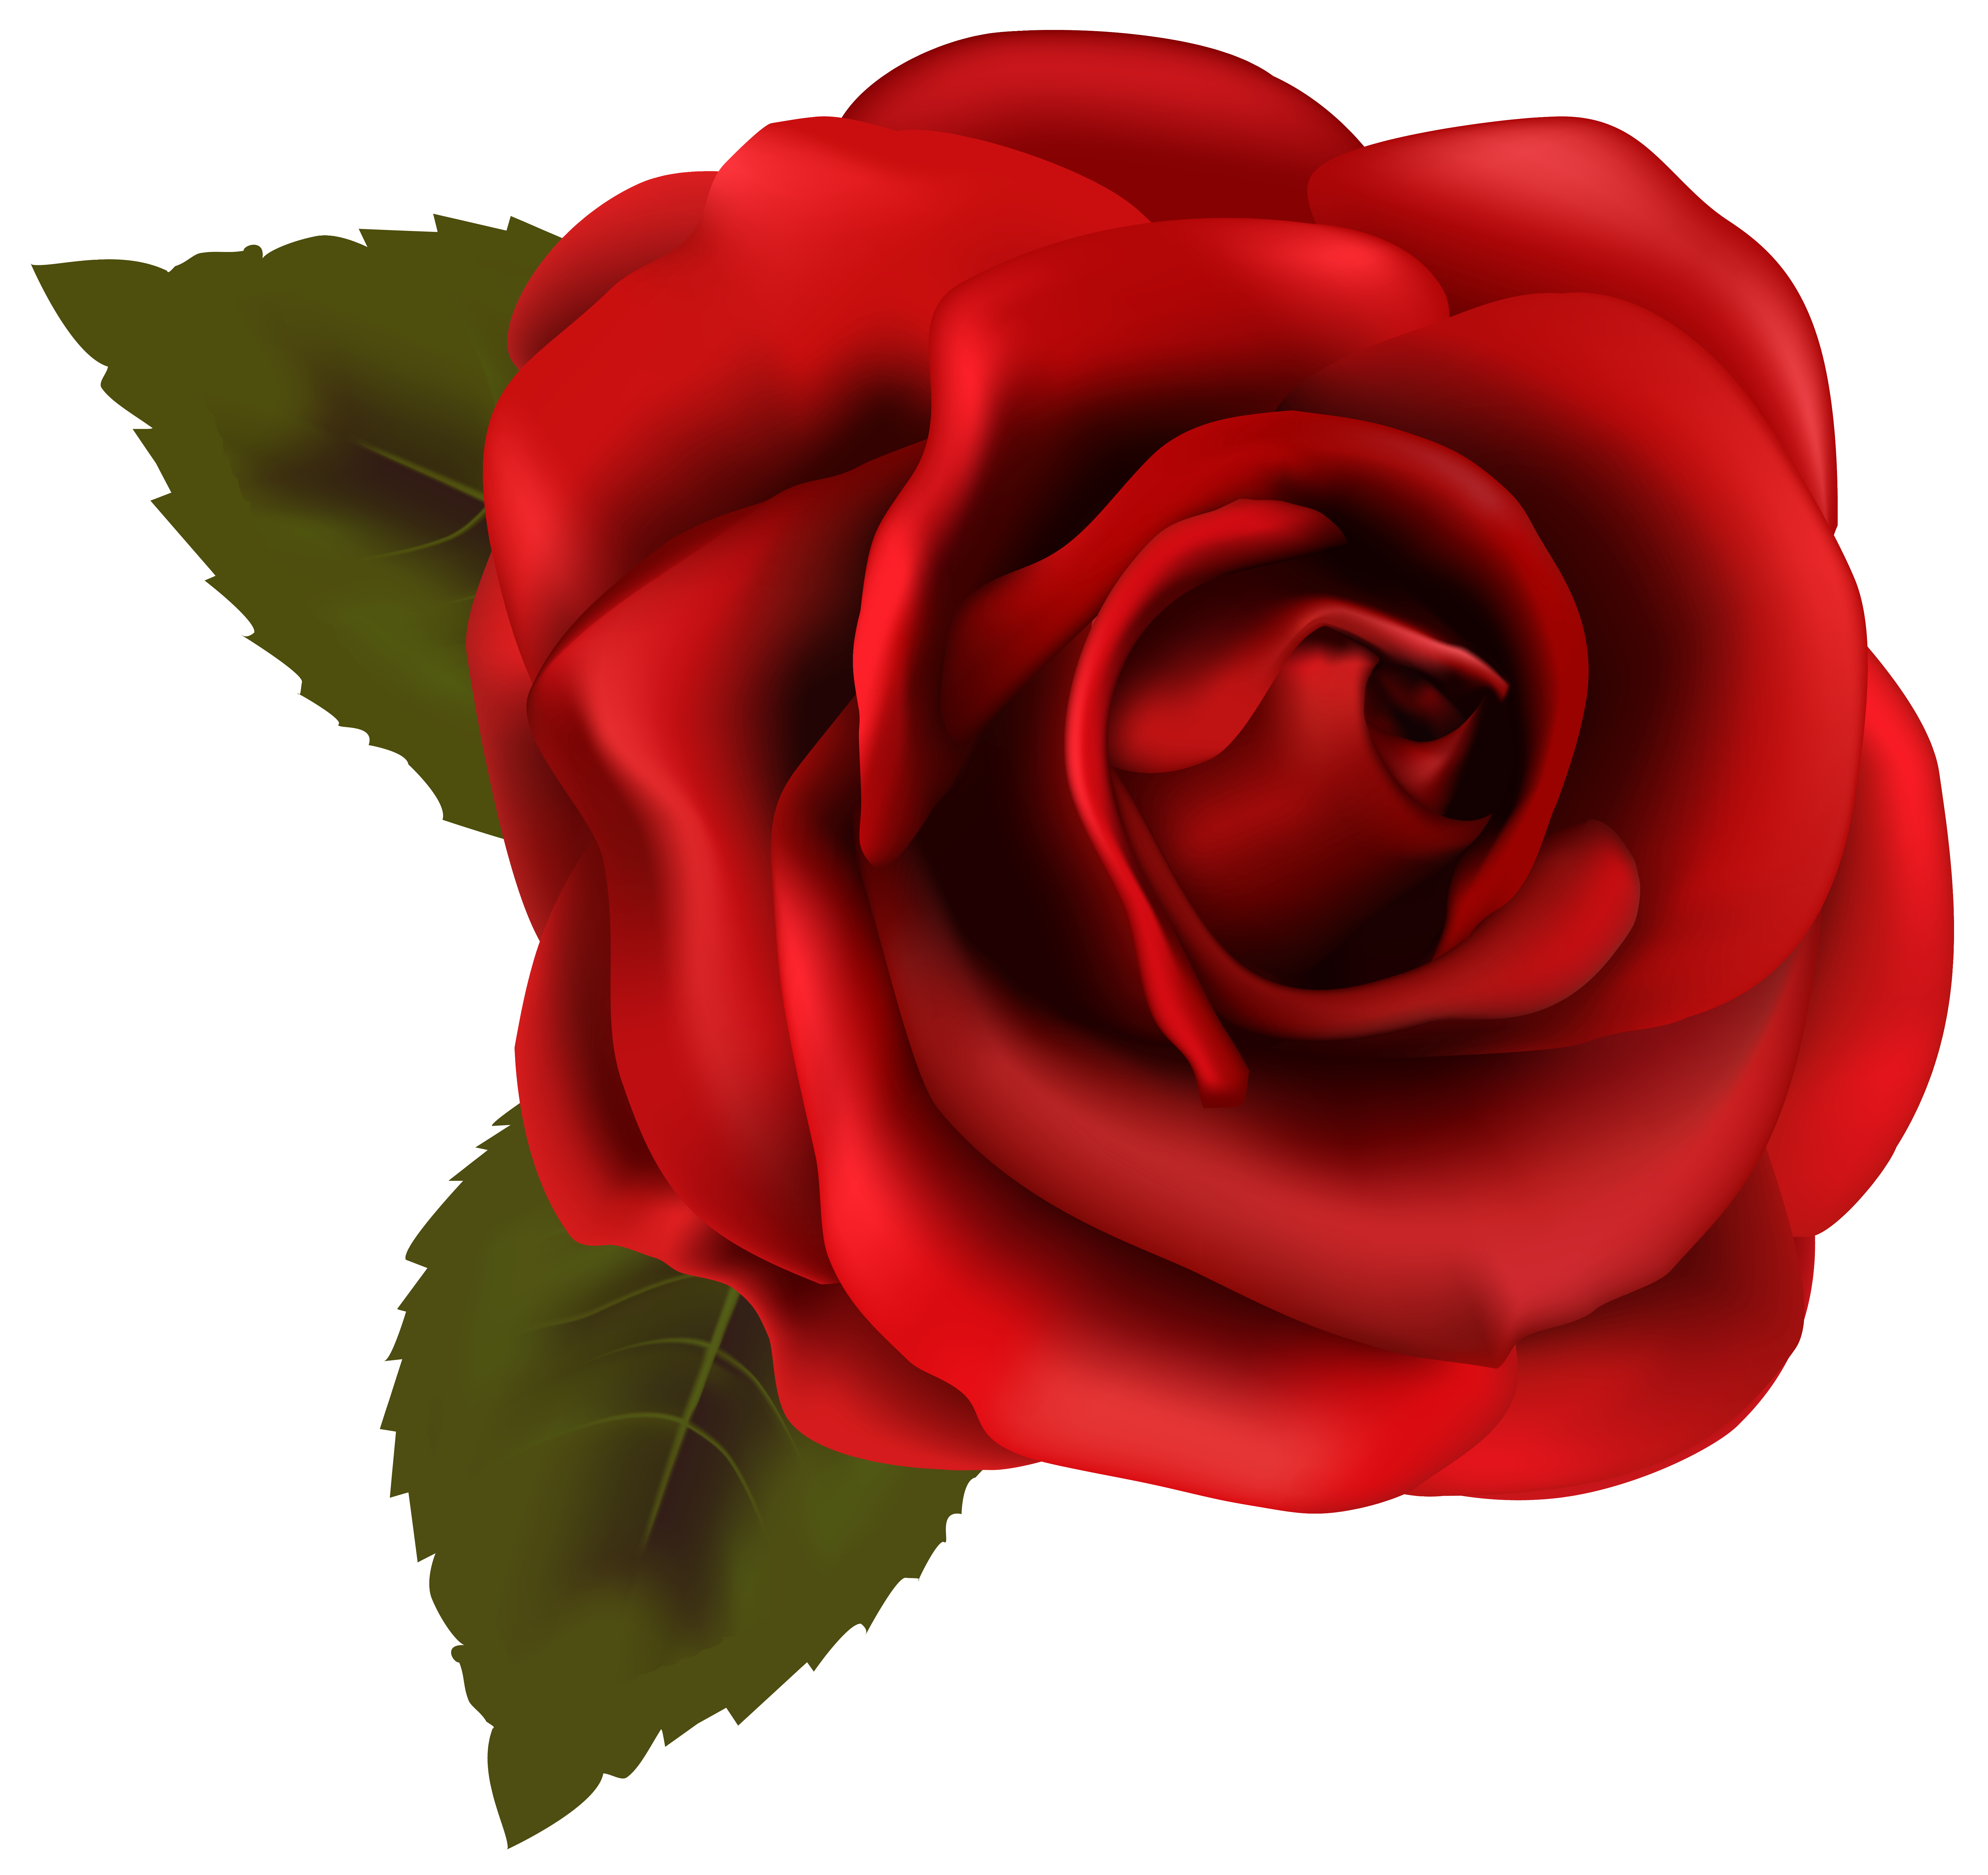 Red Flower clipart nice view #6